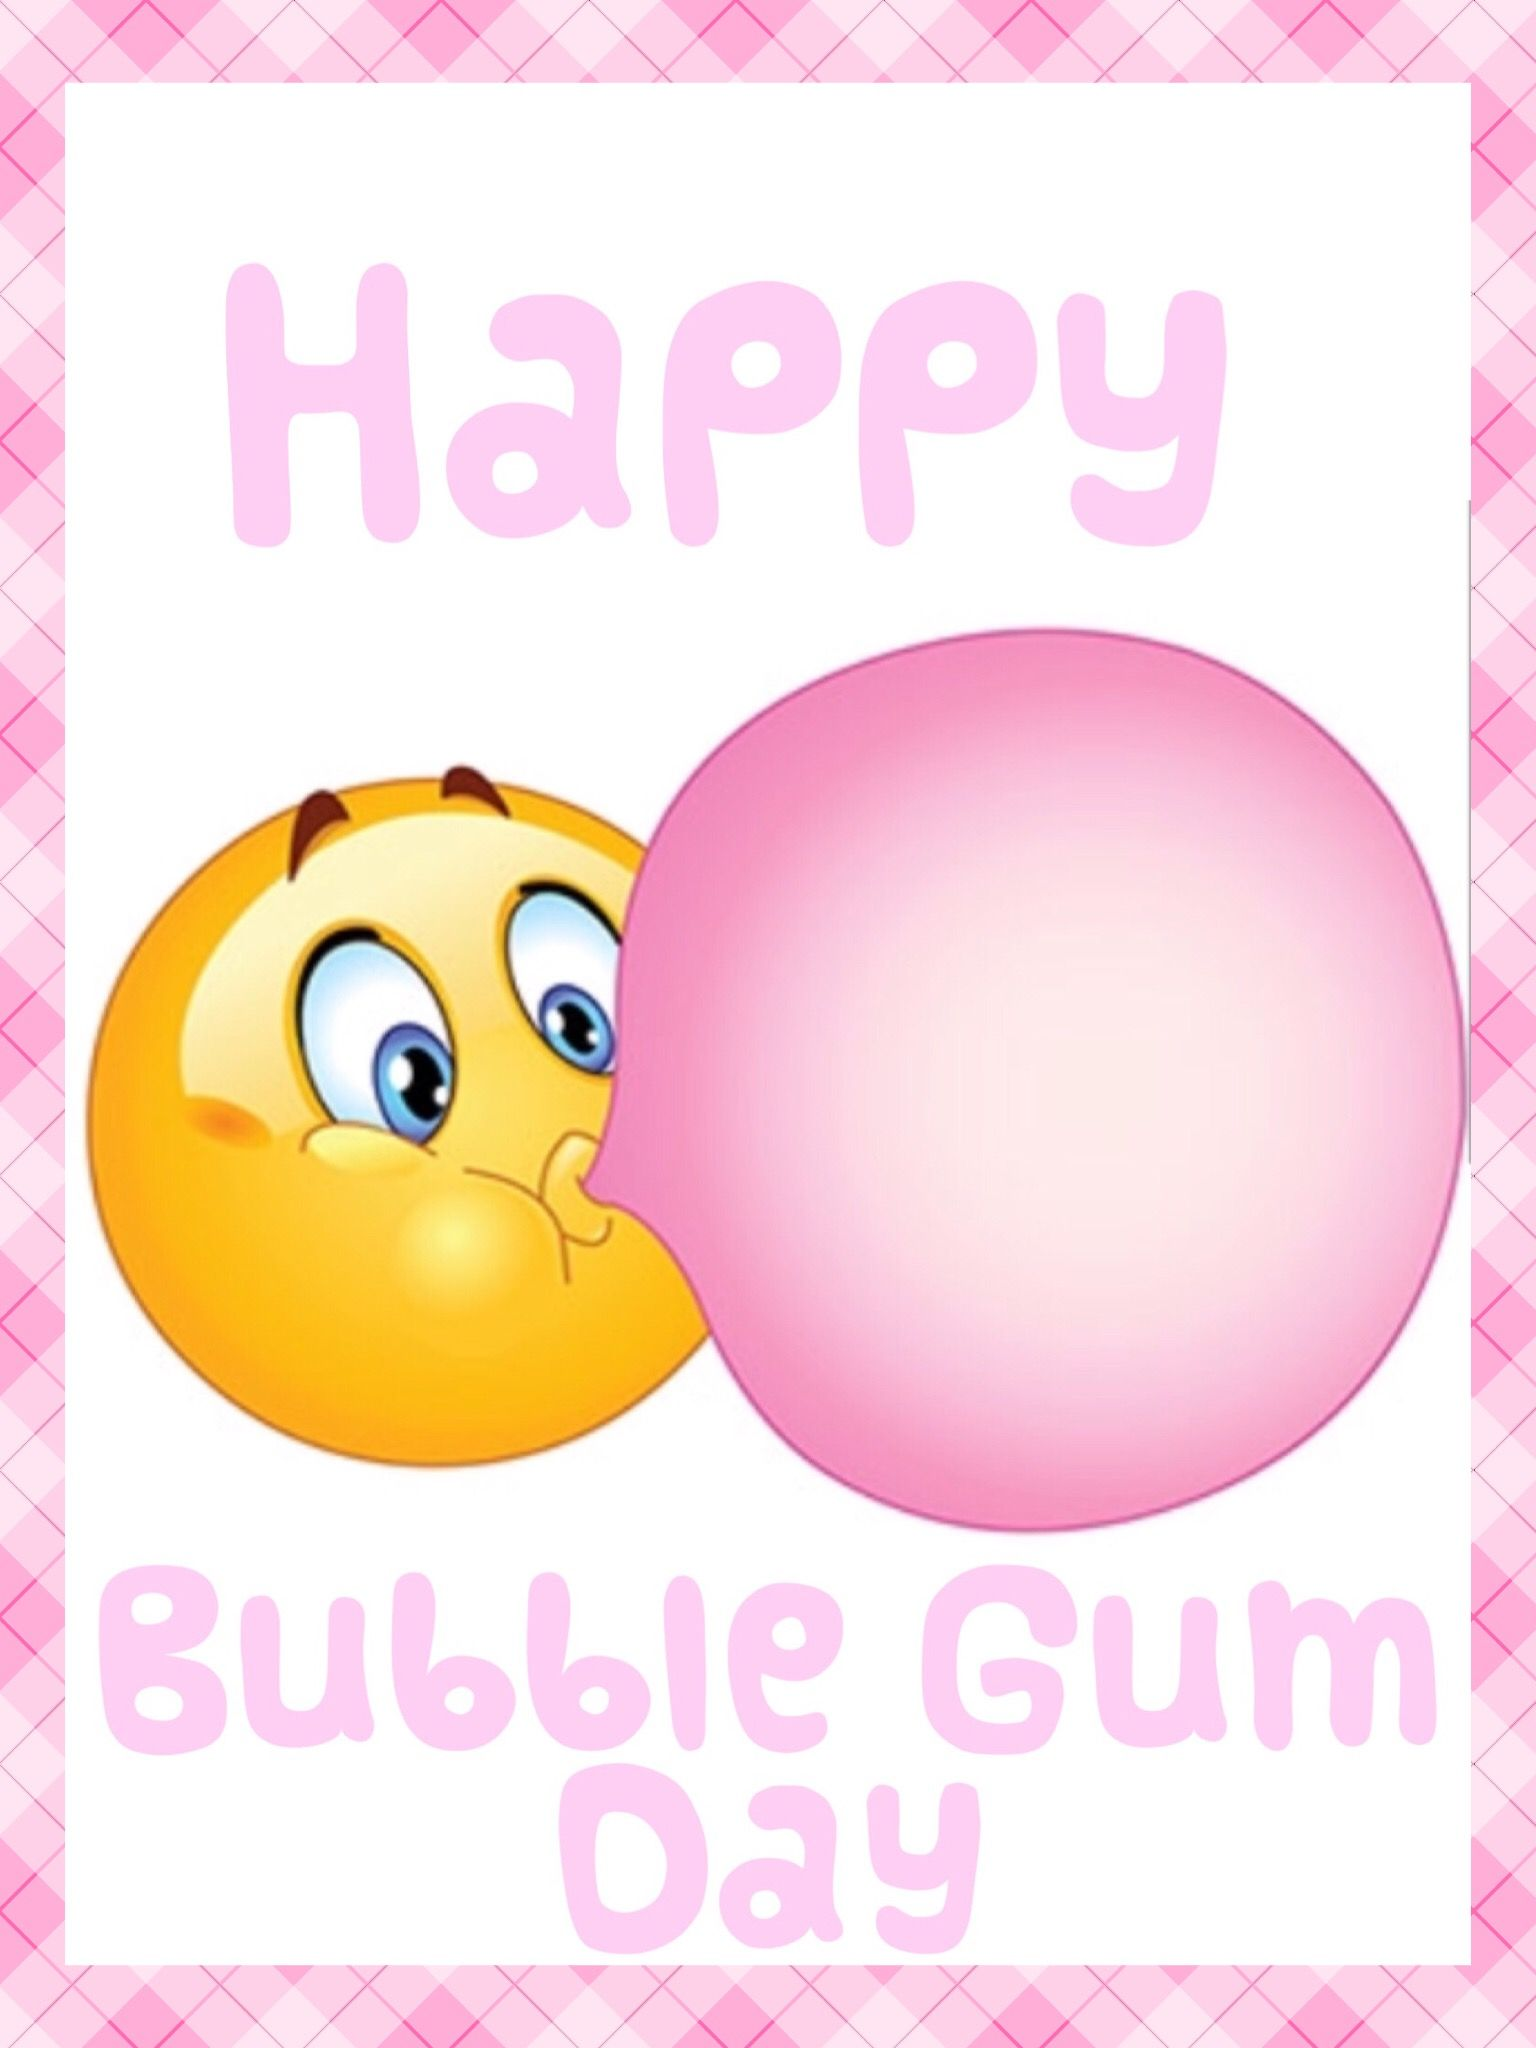 Bubble Gum Day First Friday Of February